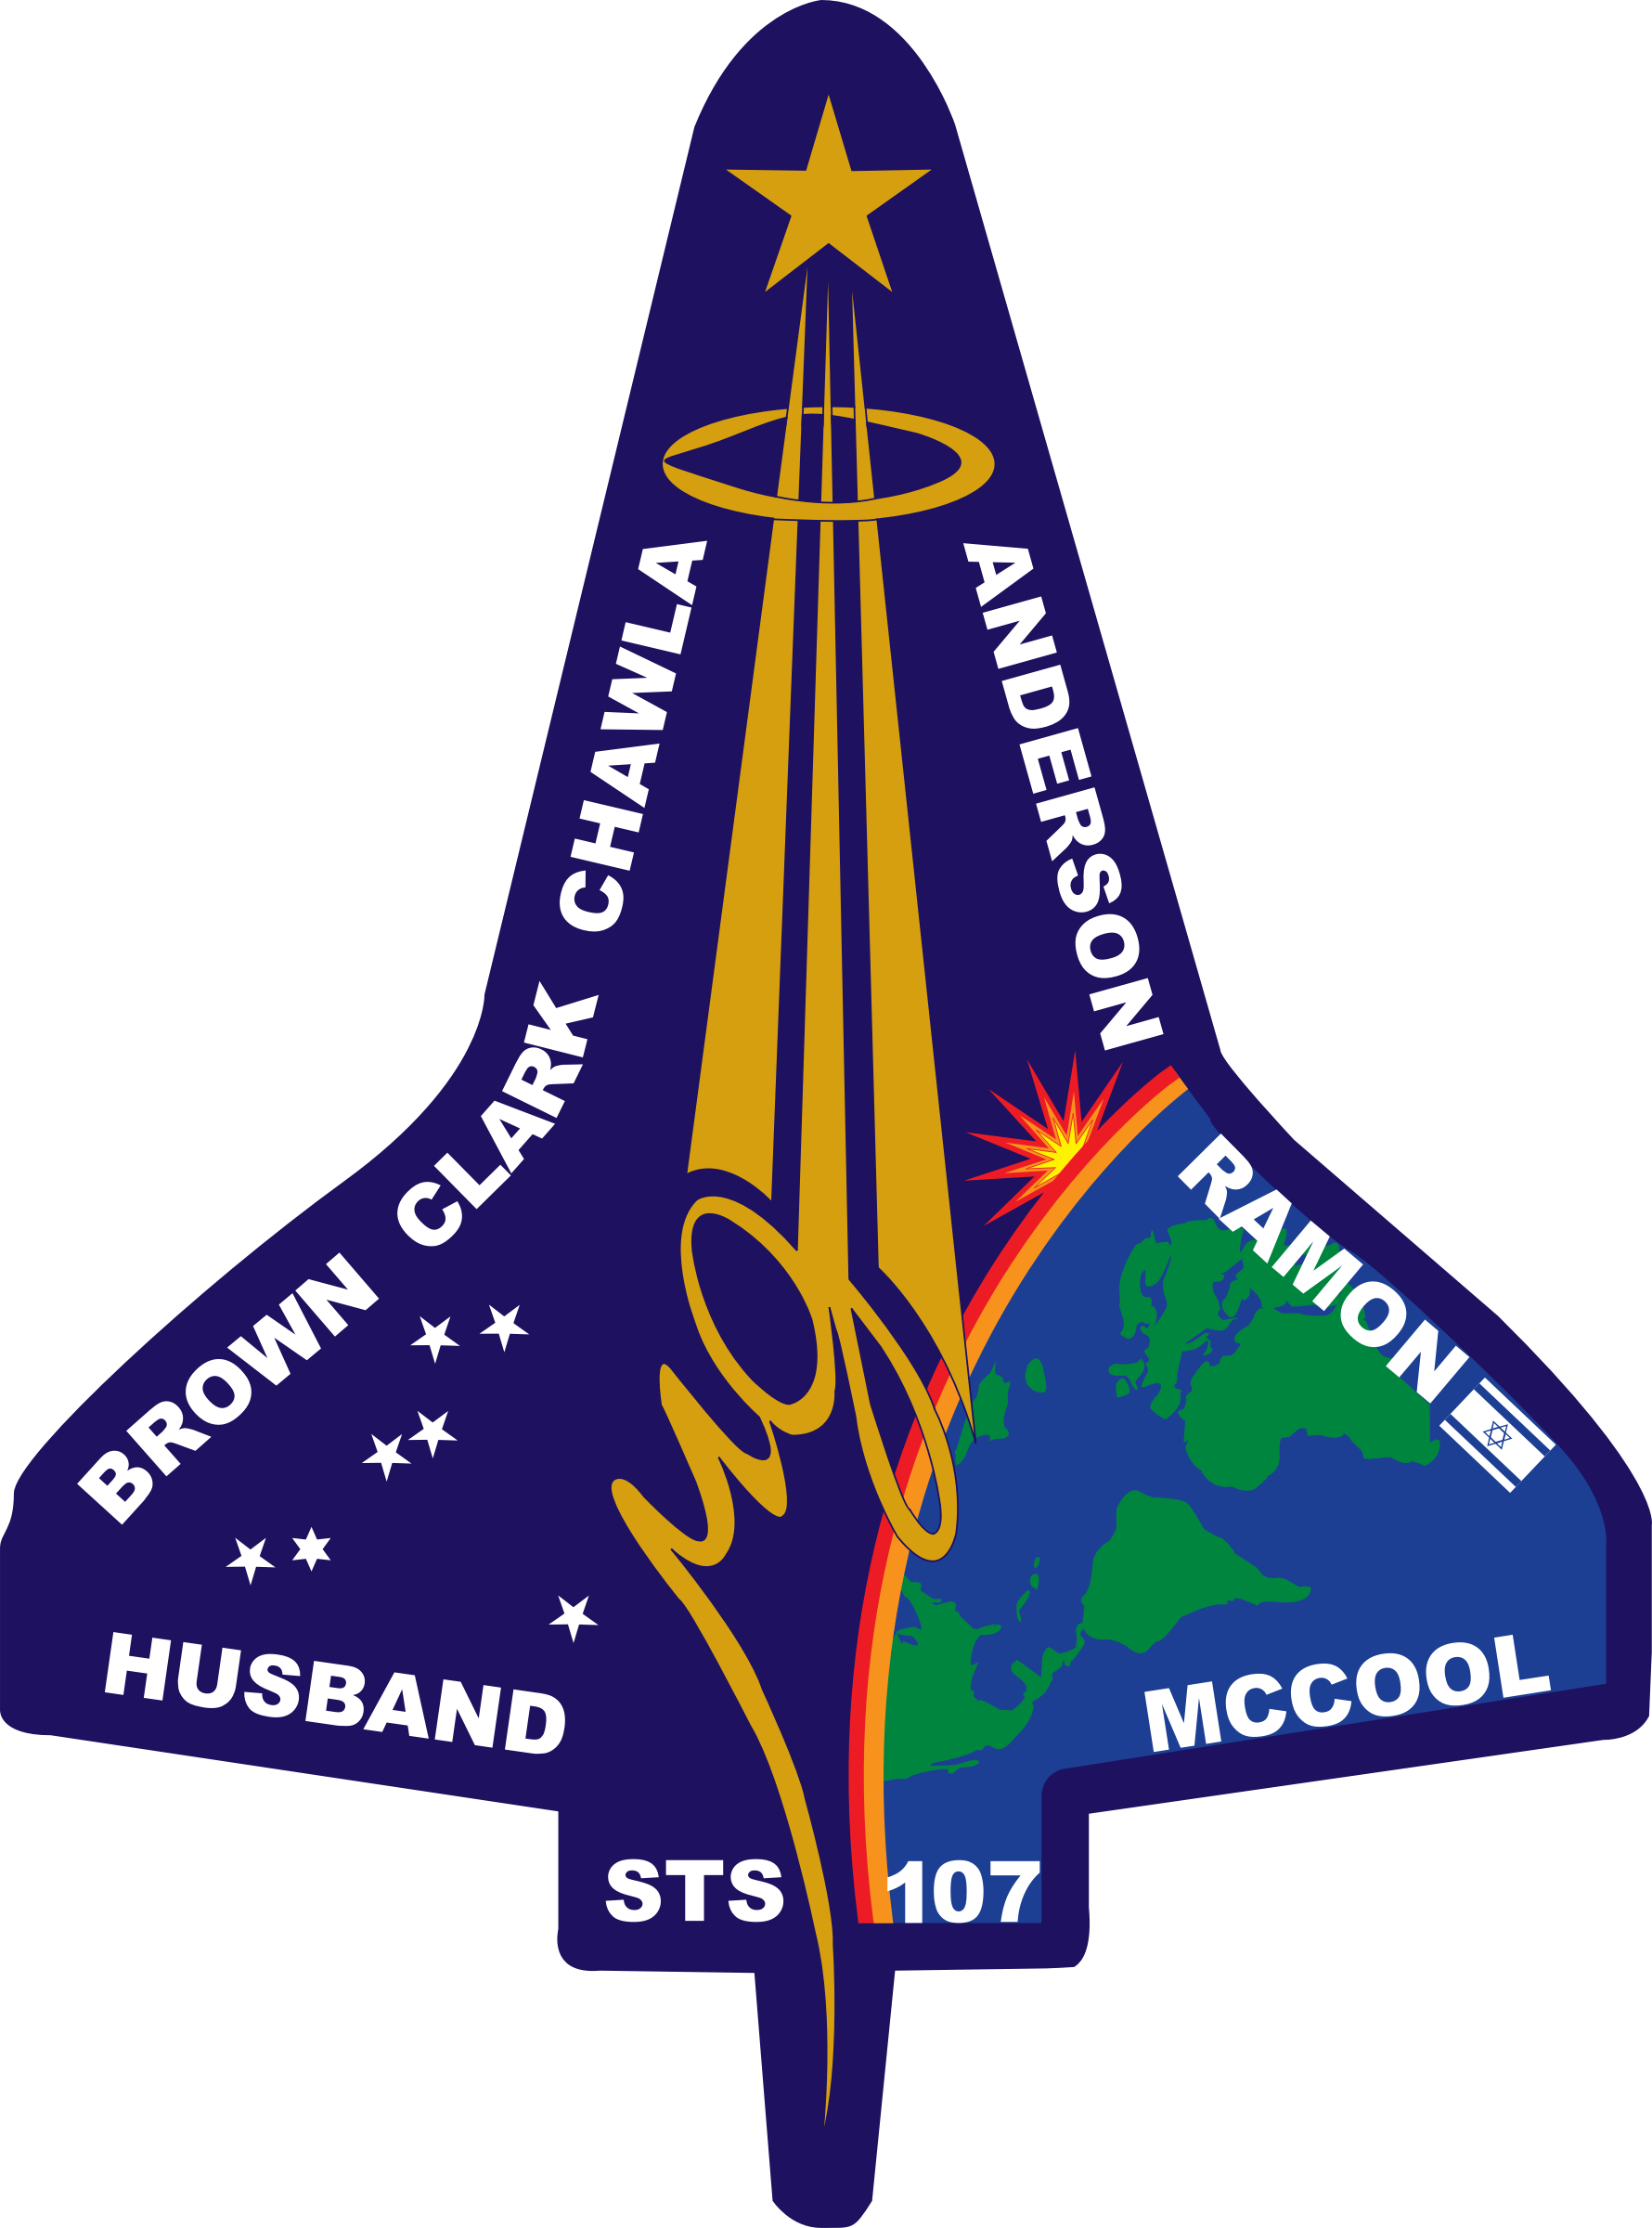 STS-107 Flight Insignia by NASA